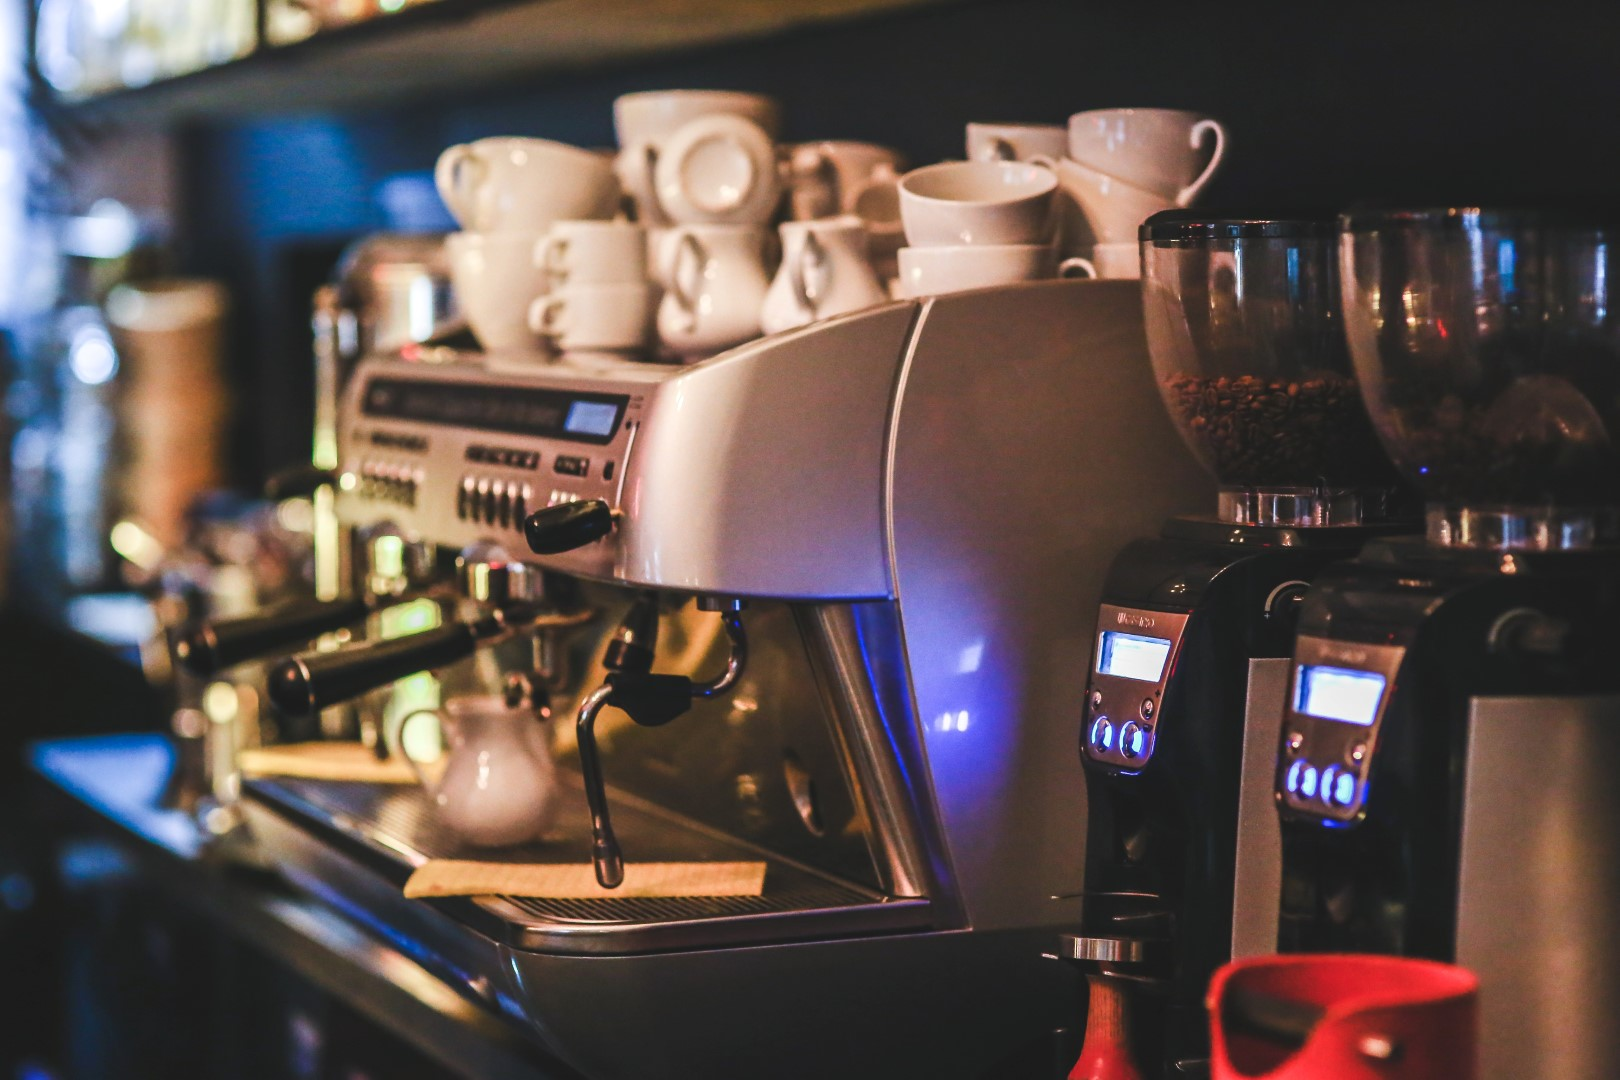 //coffeemachinetech.com.au/wp-content/uploads/2018/12/coffee-machine.jpg